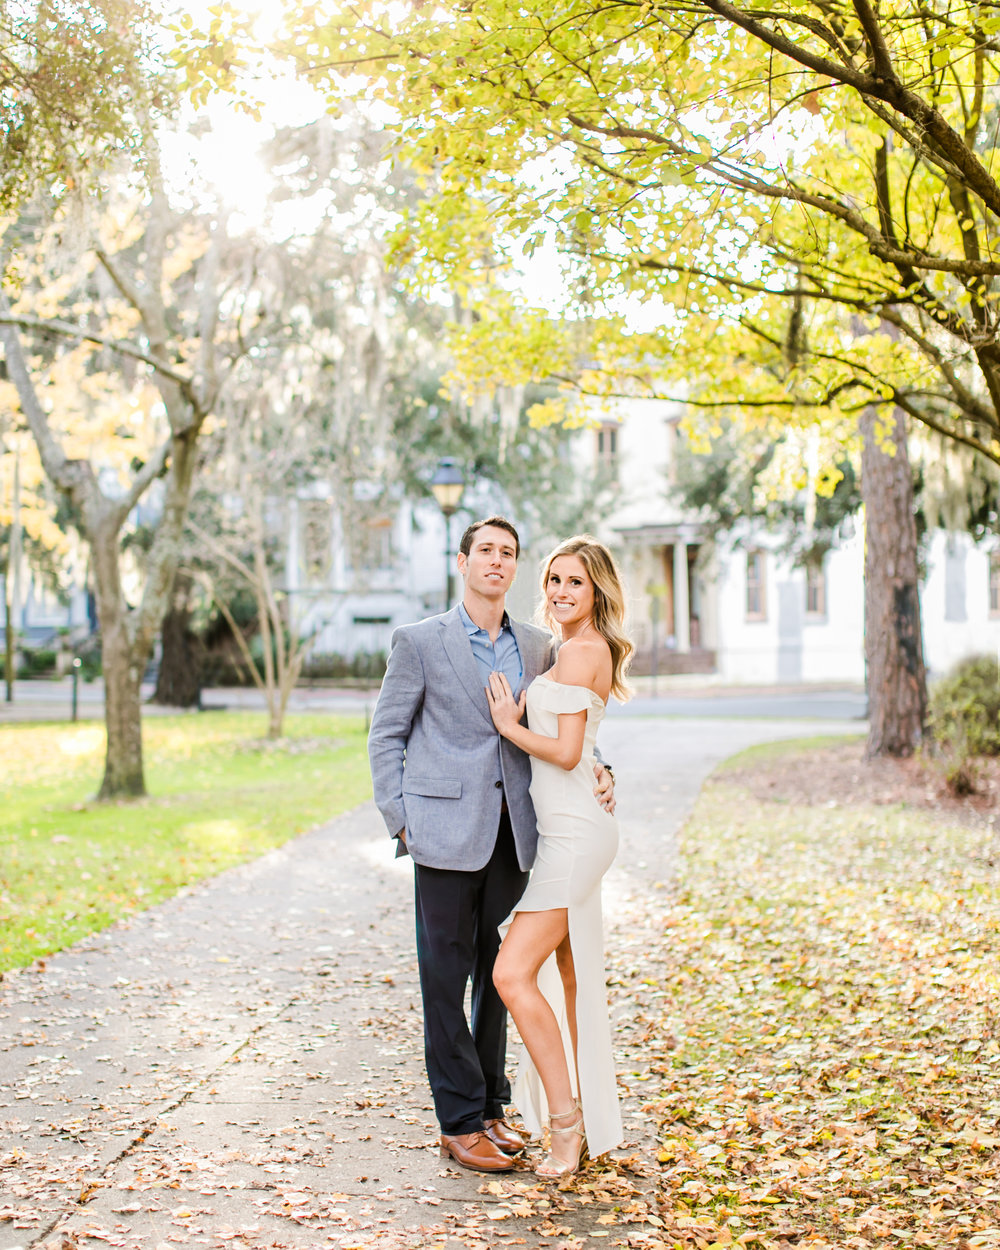 Best Locations For Engagement Photos in Savannah